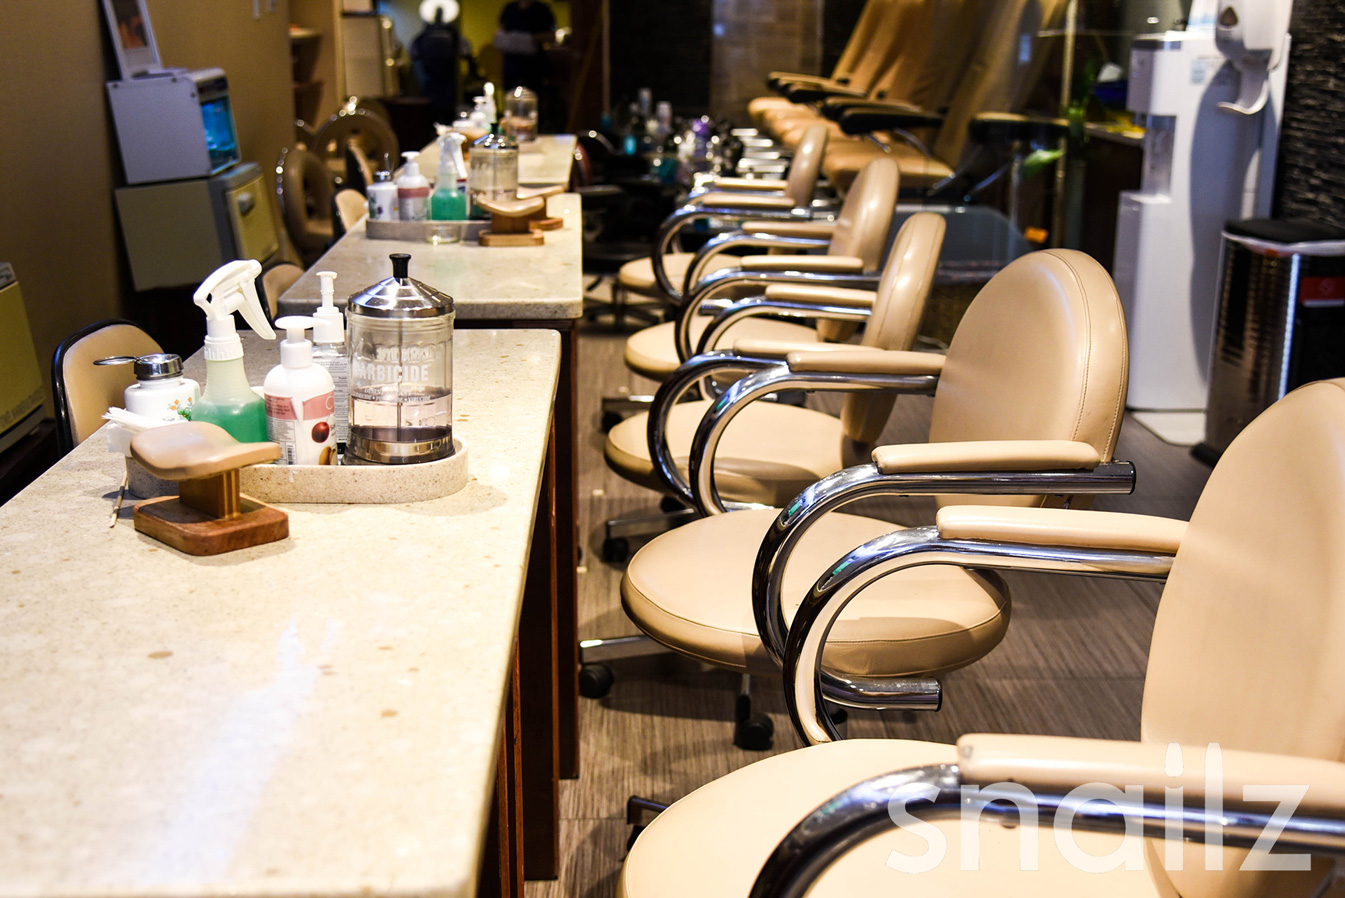 Le Salon Beig Le Salon Day Spa Salon Full Pricelist Phone Number 145 E 72nd